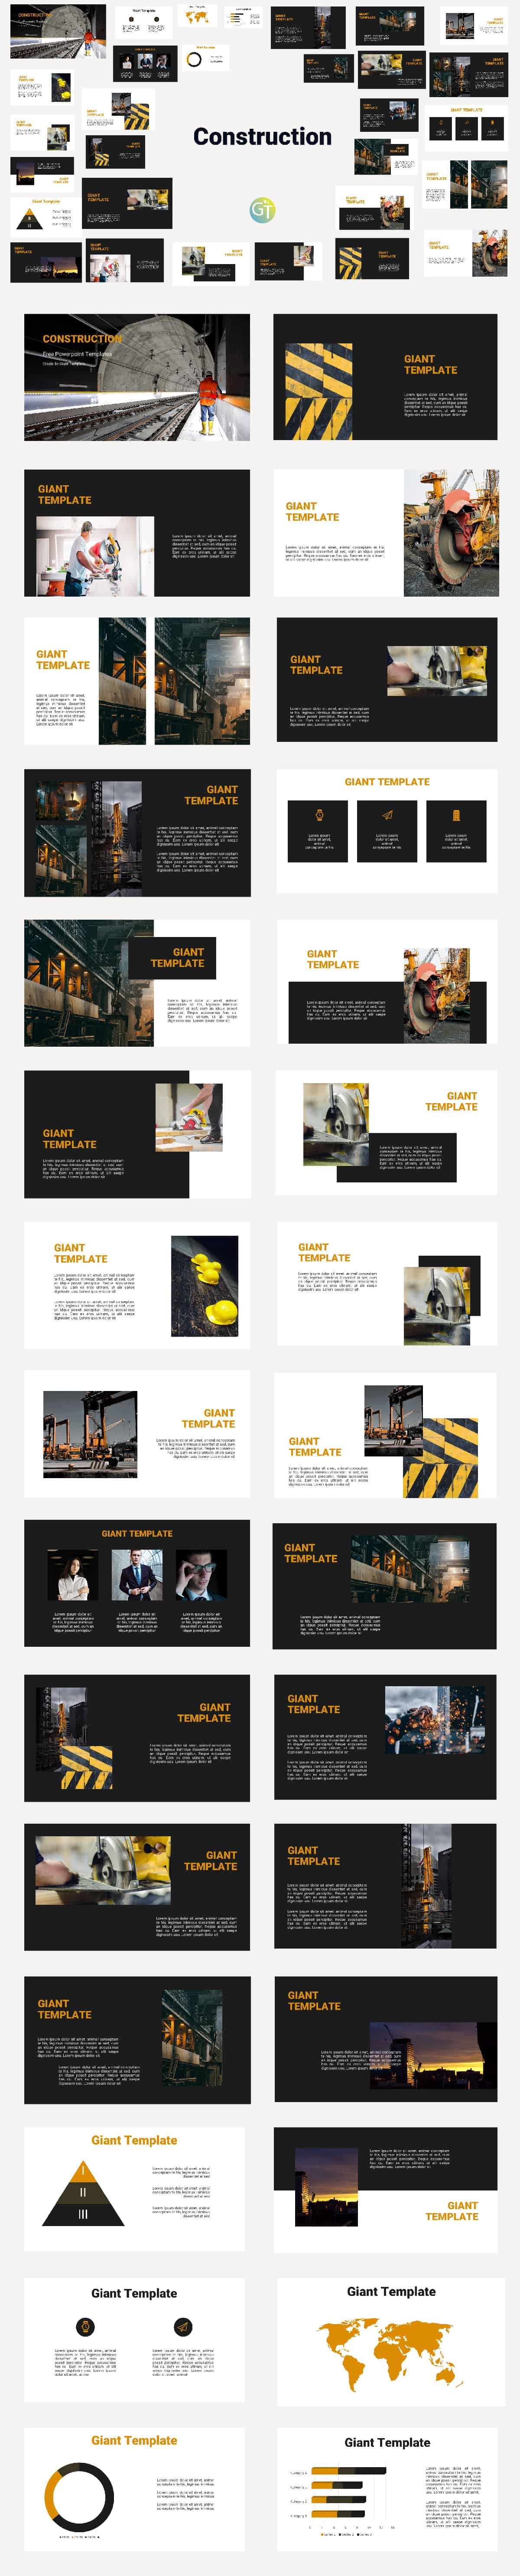 Free Powerpoint Templates Construction